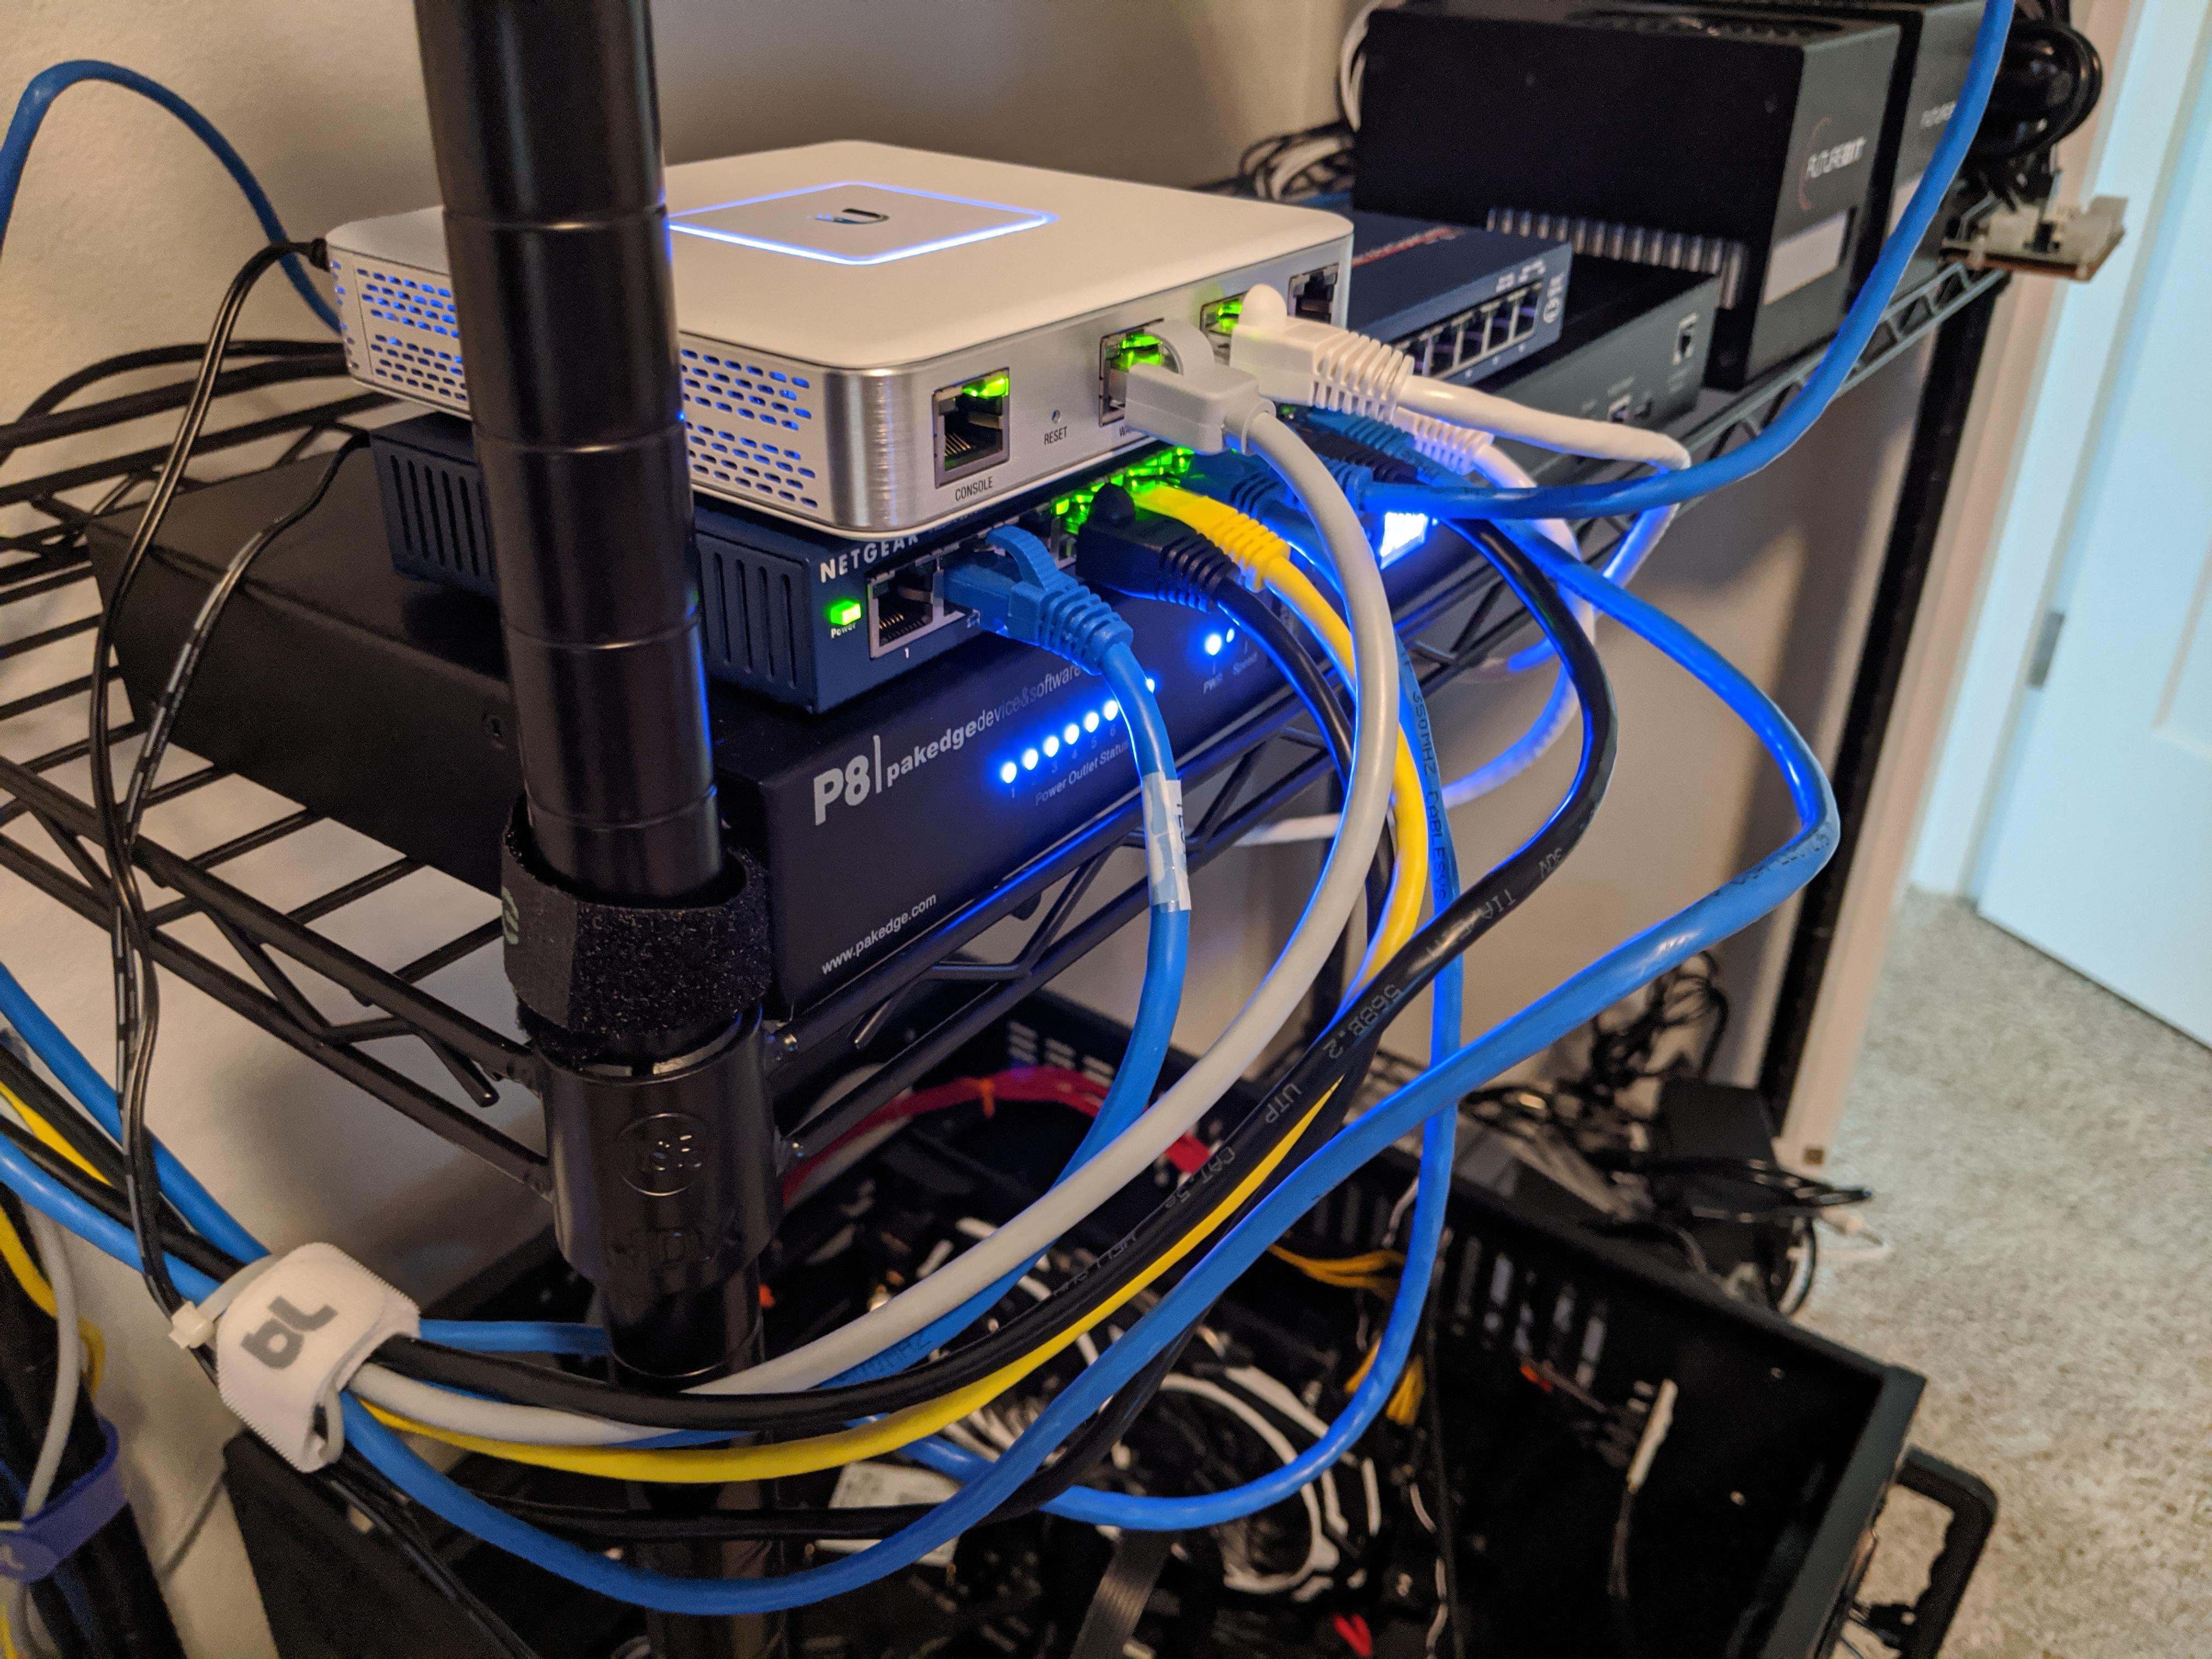 follow up pic to my server rack this